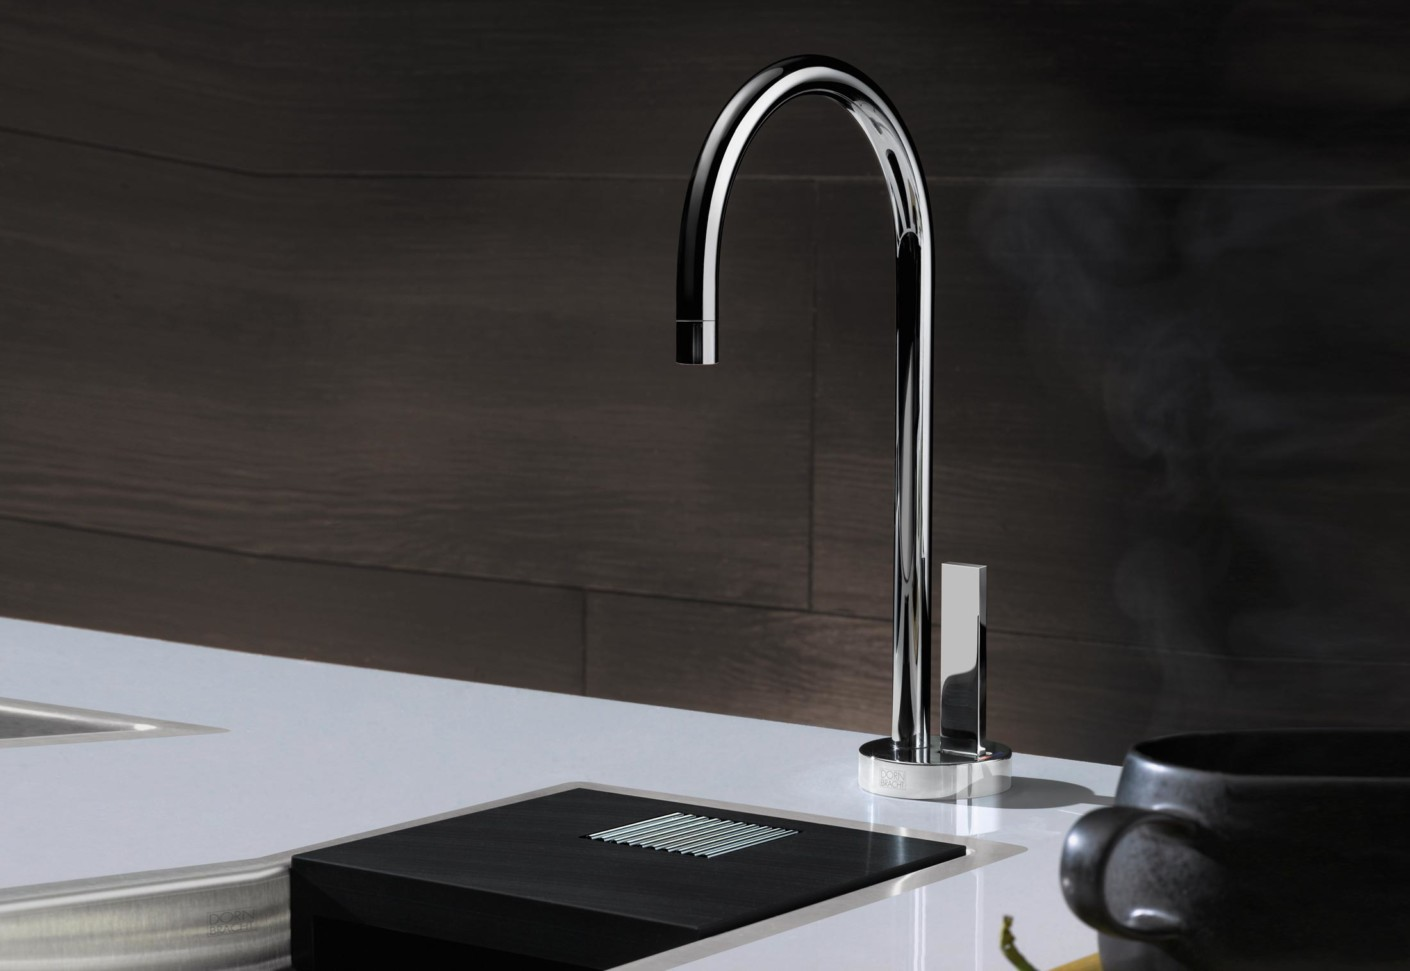 hot of best sink faucets how and kitchen stop faucet install dispenser image a water to valve instant